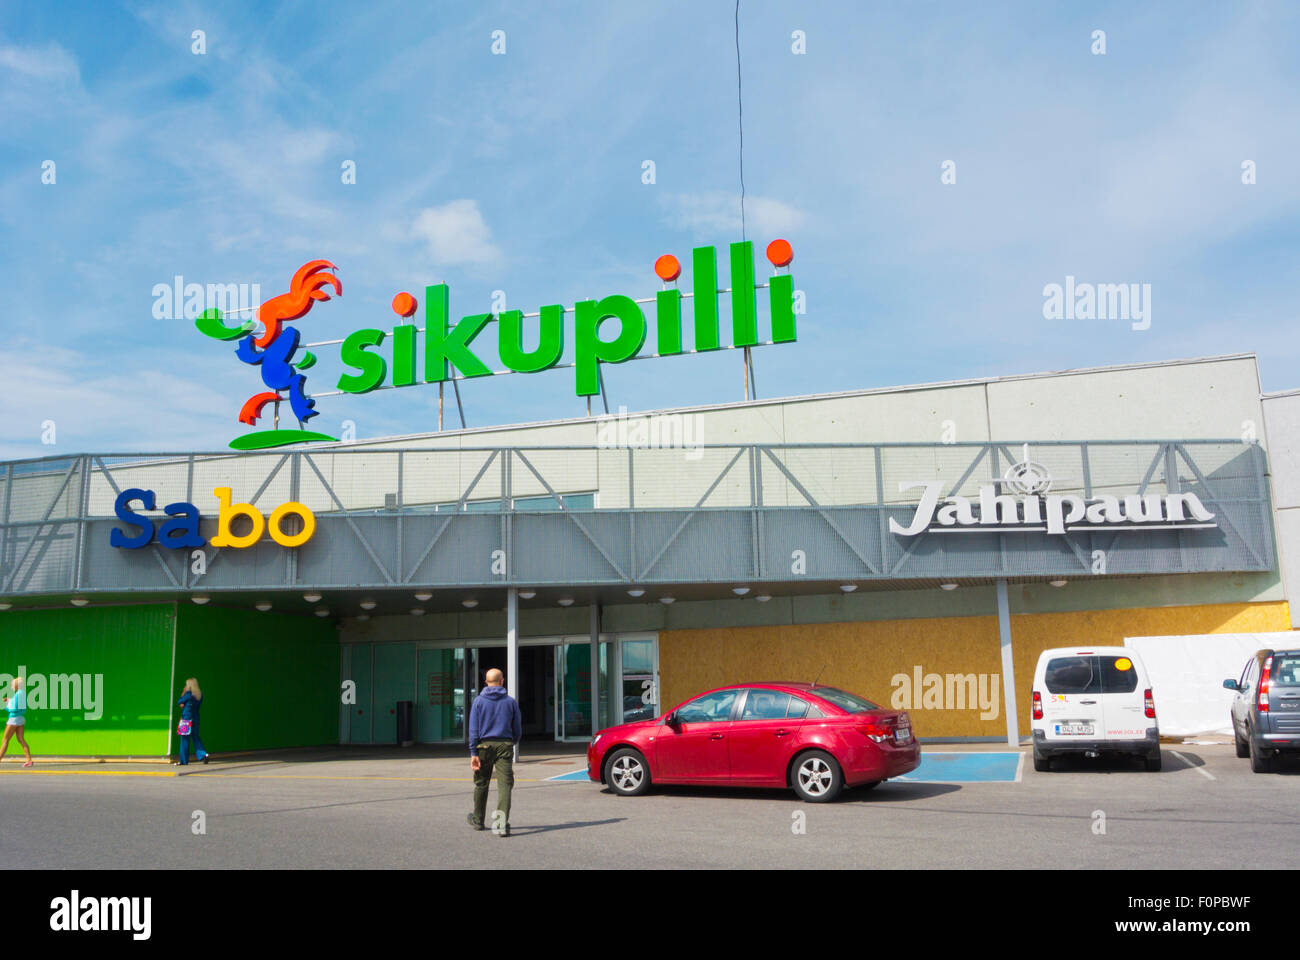 2f85b29c8c2 Shopping centre, Sikupilli district, Tallinn, Harju county, Estonia, Europe